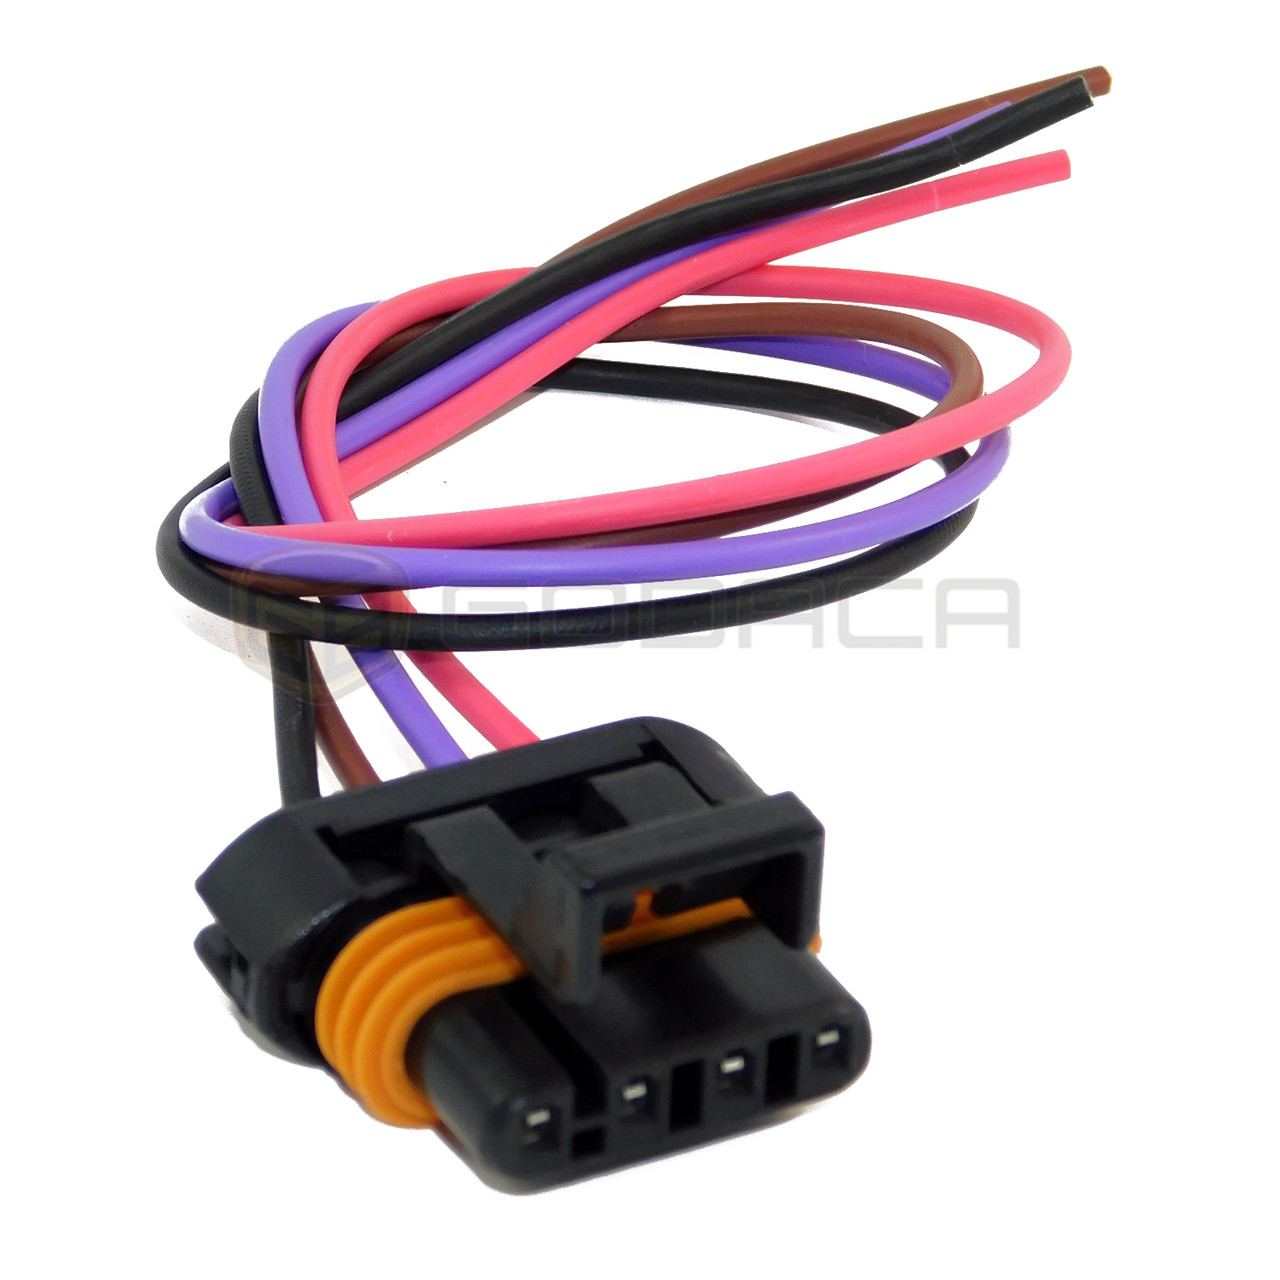 small resolution of 1 x ls1 ls6 ignition coil wiring harness pigtail connector gm camaro corvette godaca llc